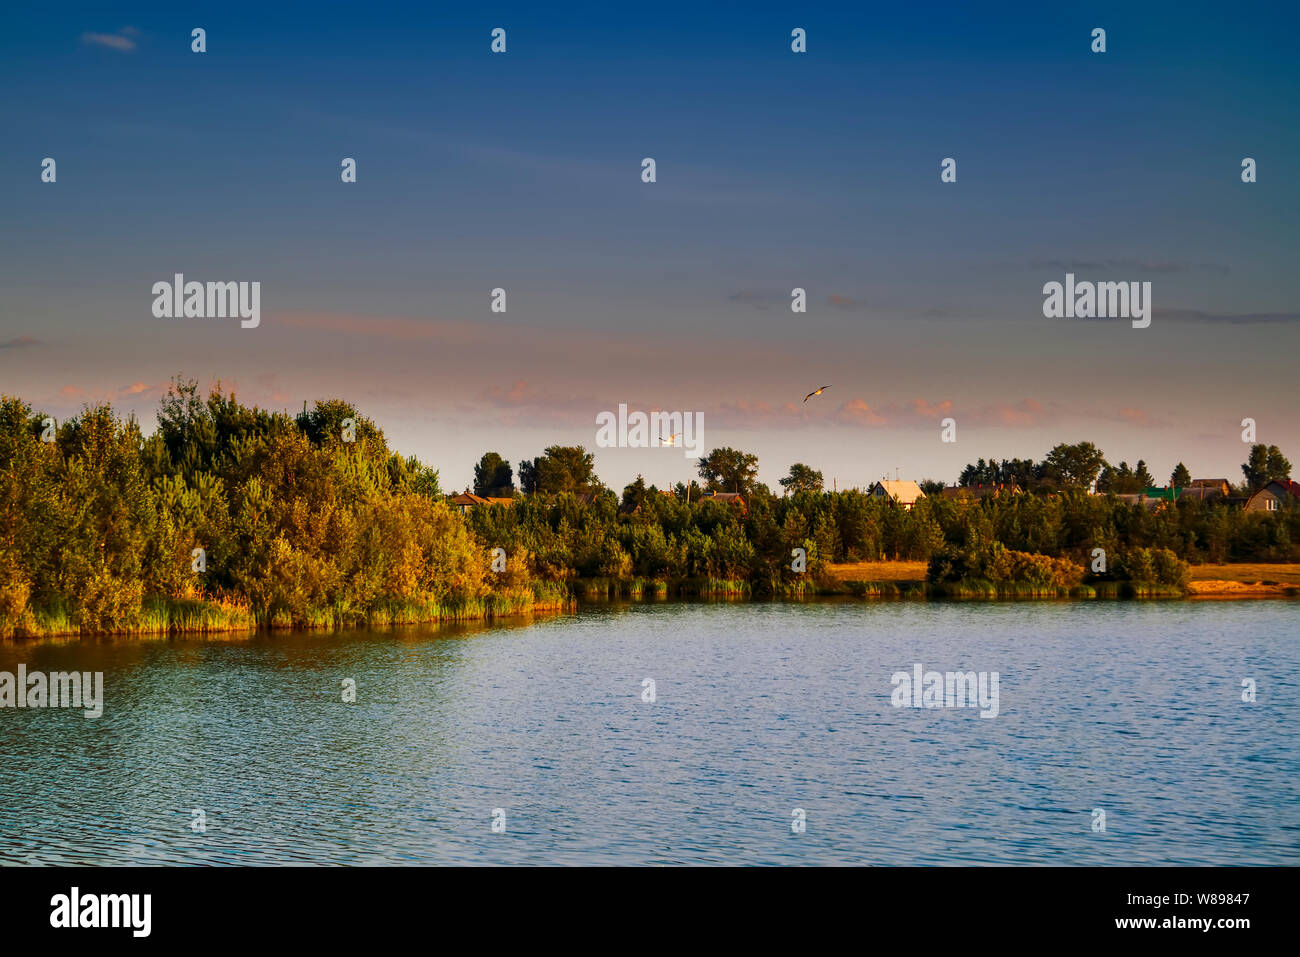 The Russian village on the banks of the river against the backdrop of the setting sun. Stock Photo